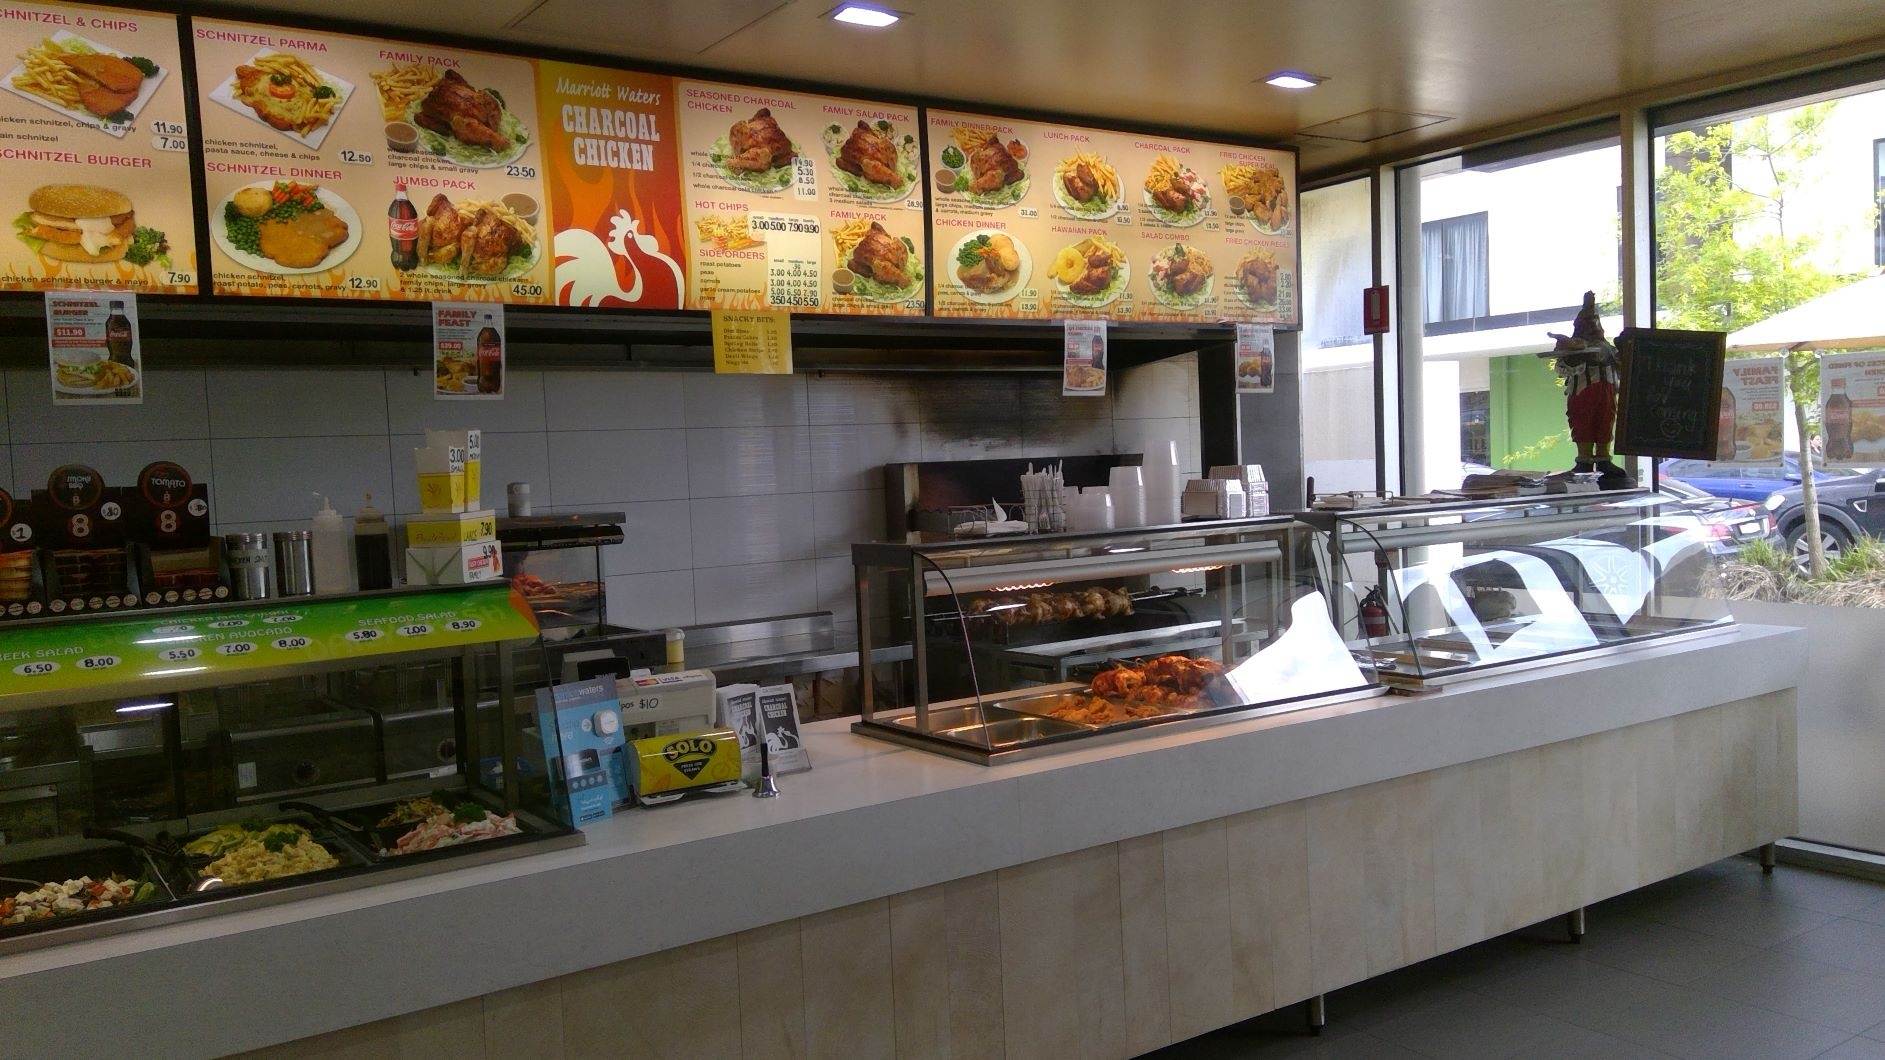 IMMICULATE CHARCOAL CHICKEN SHOP FOR SALE LYNDHURST $85 K